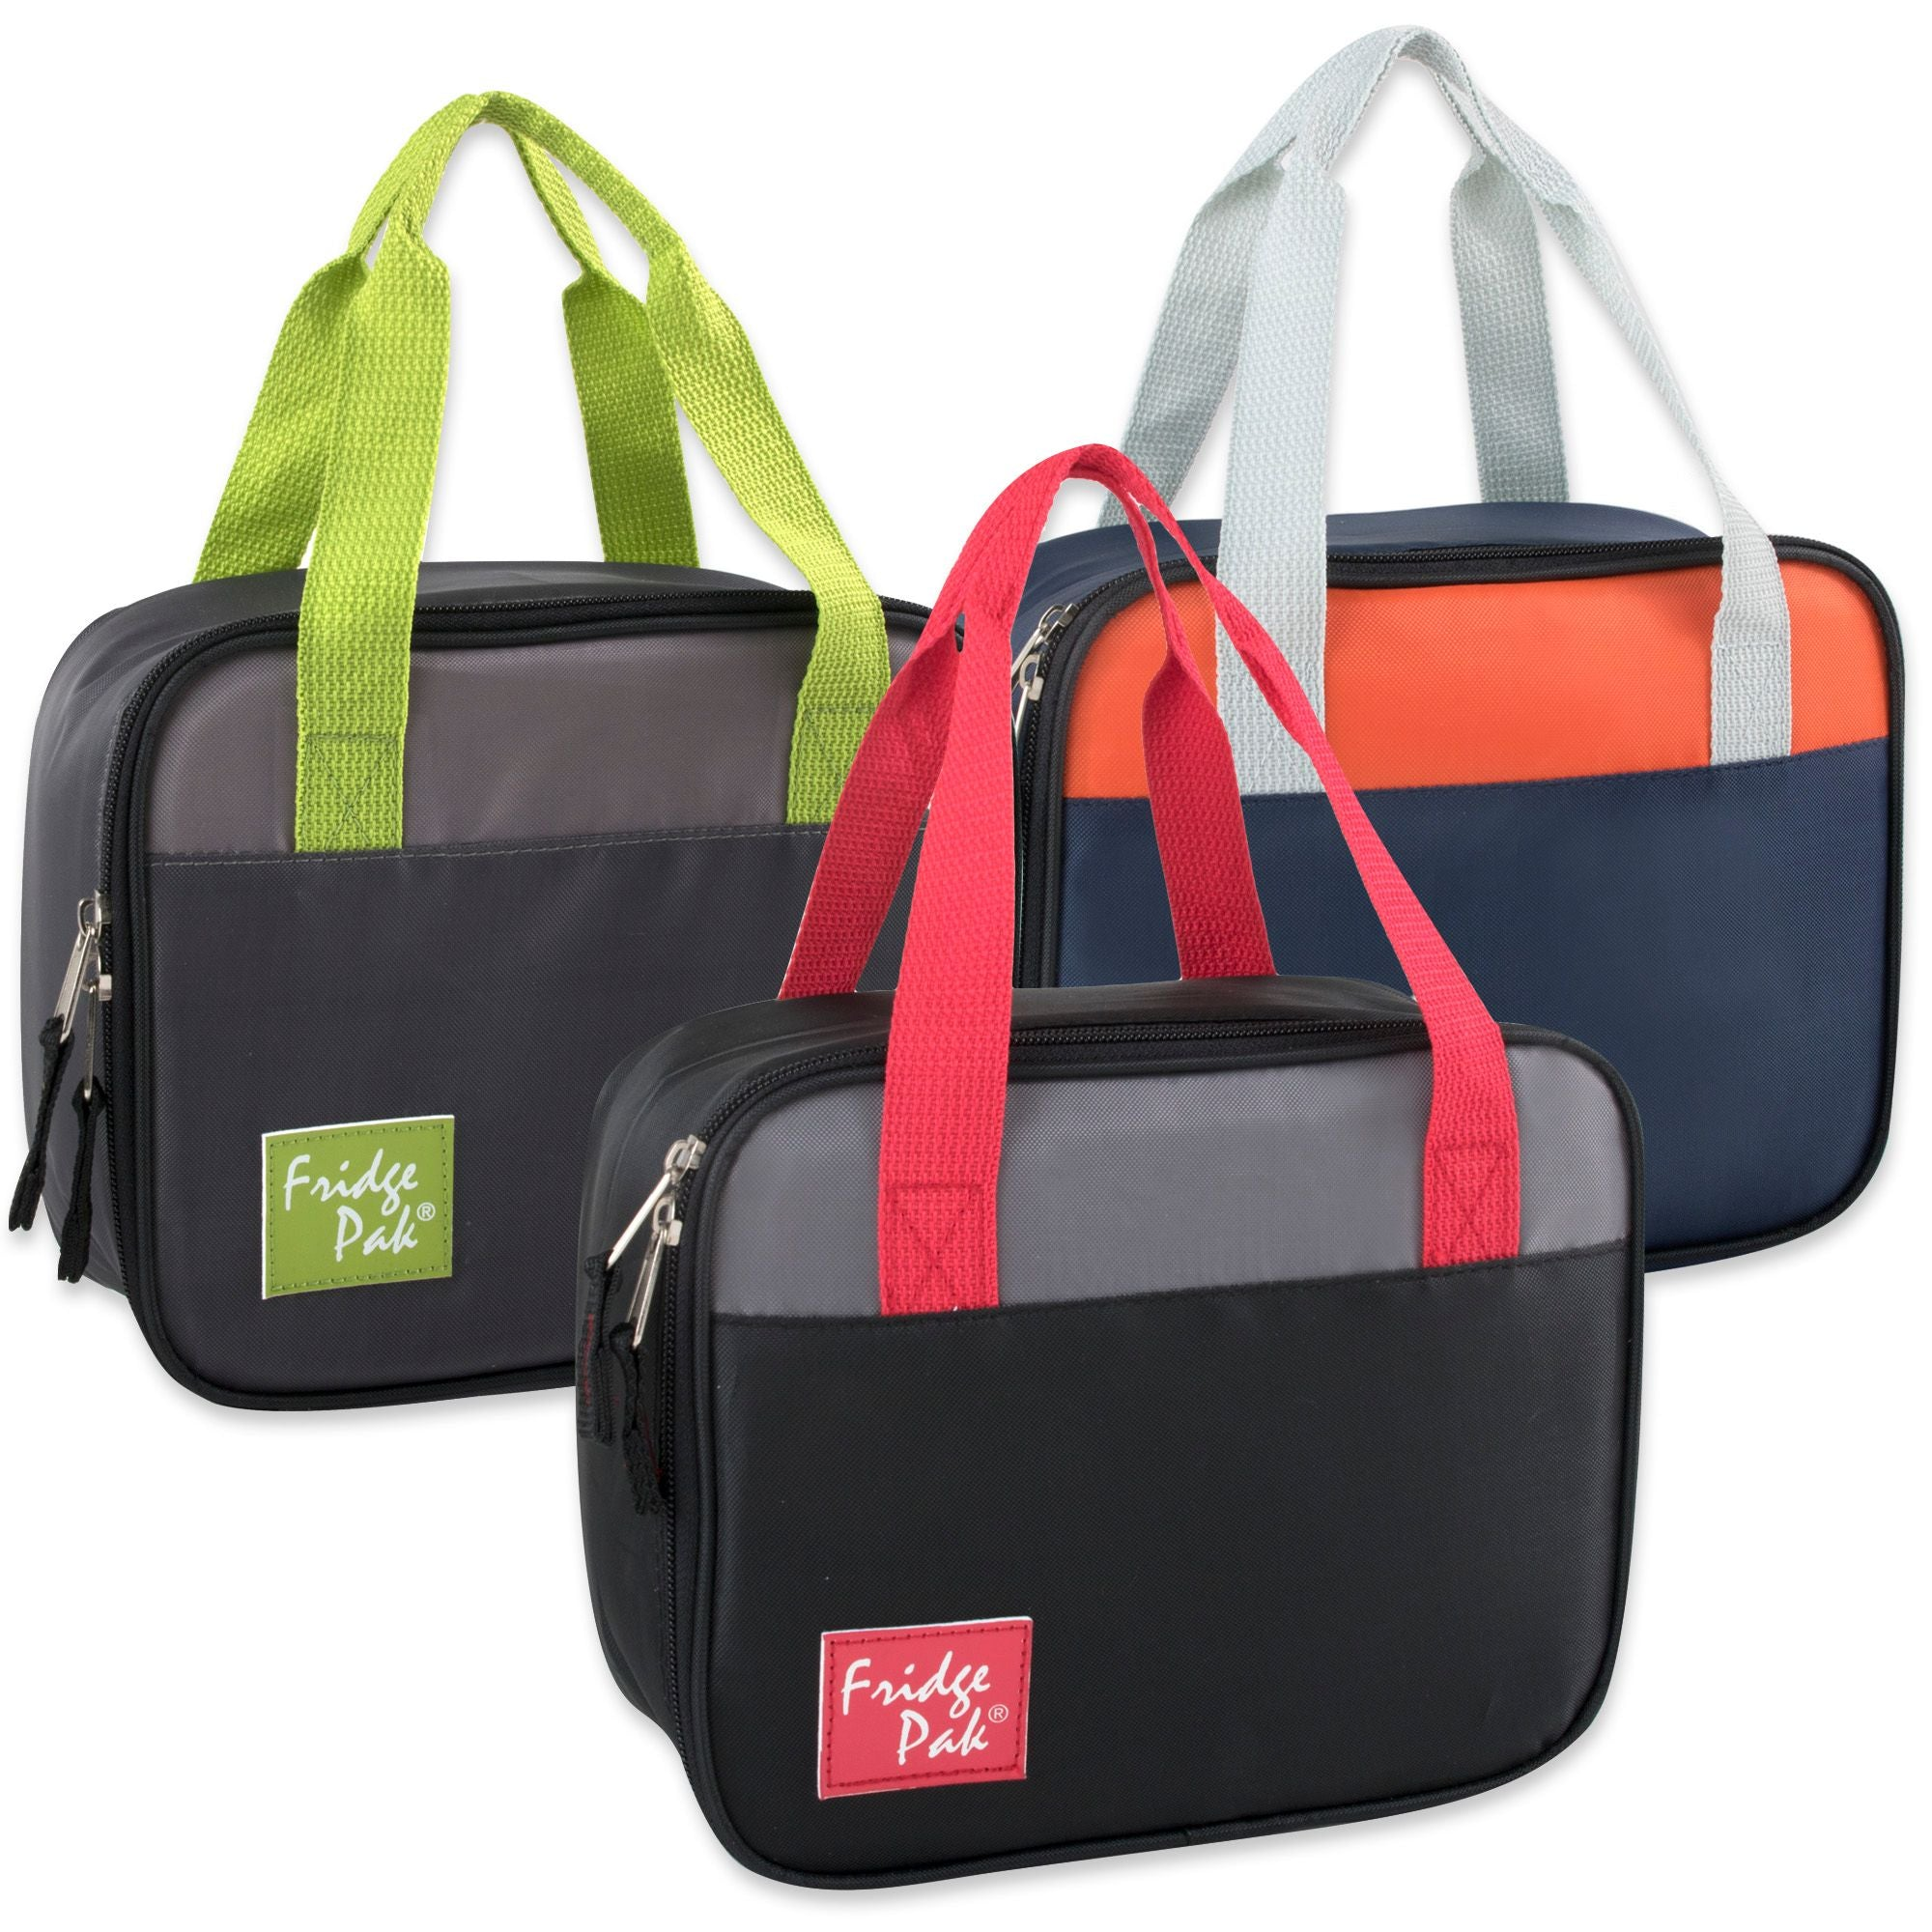 Assortment of cooler bags/ lunch bags